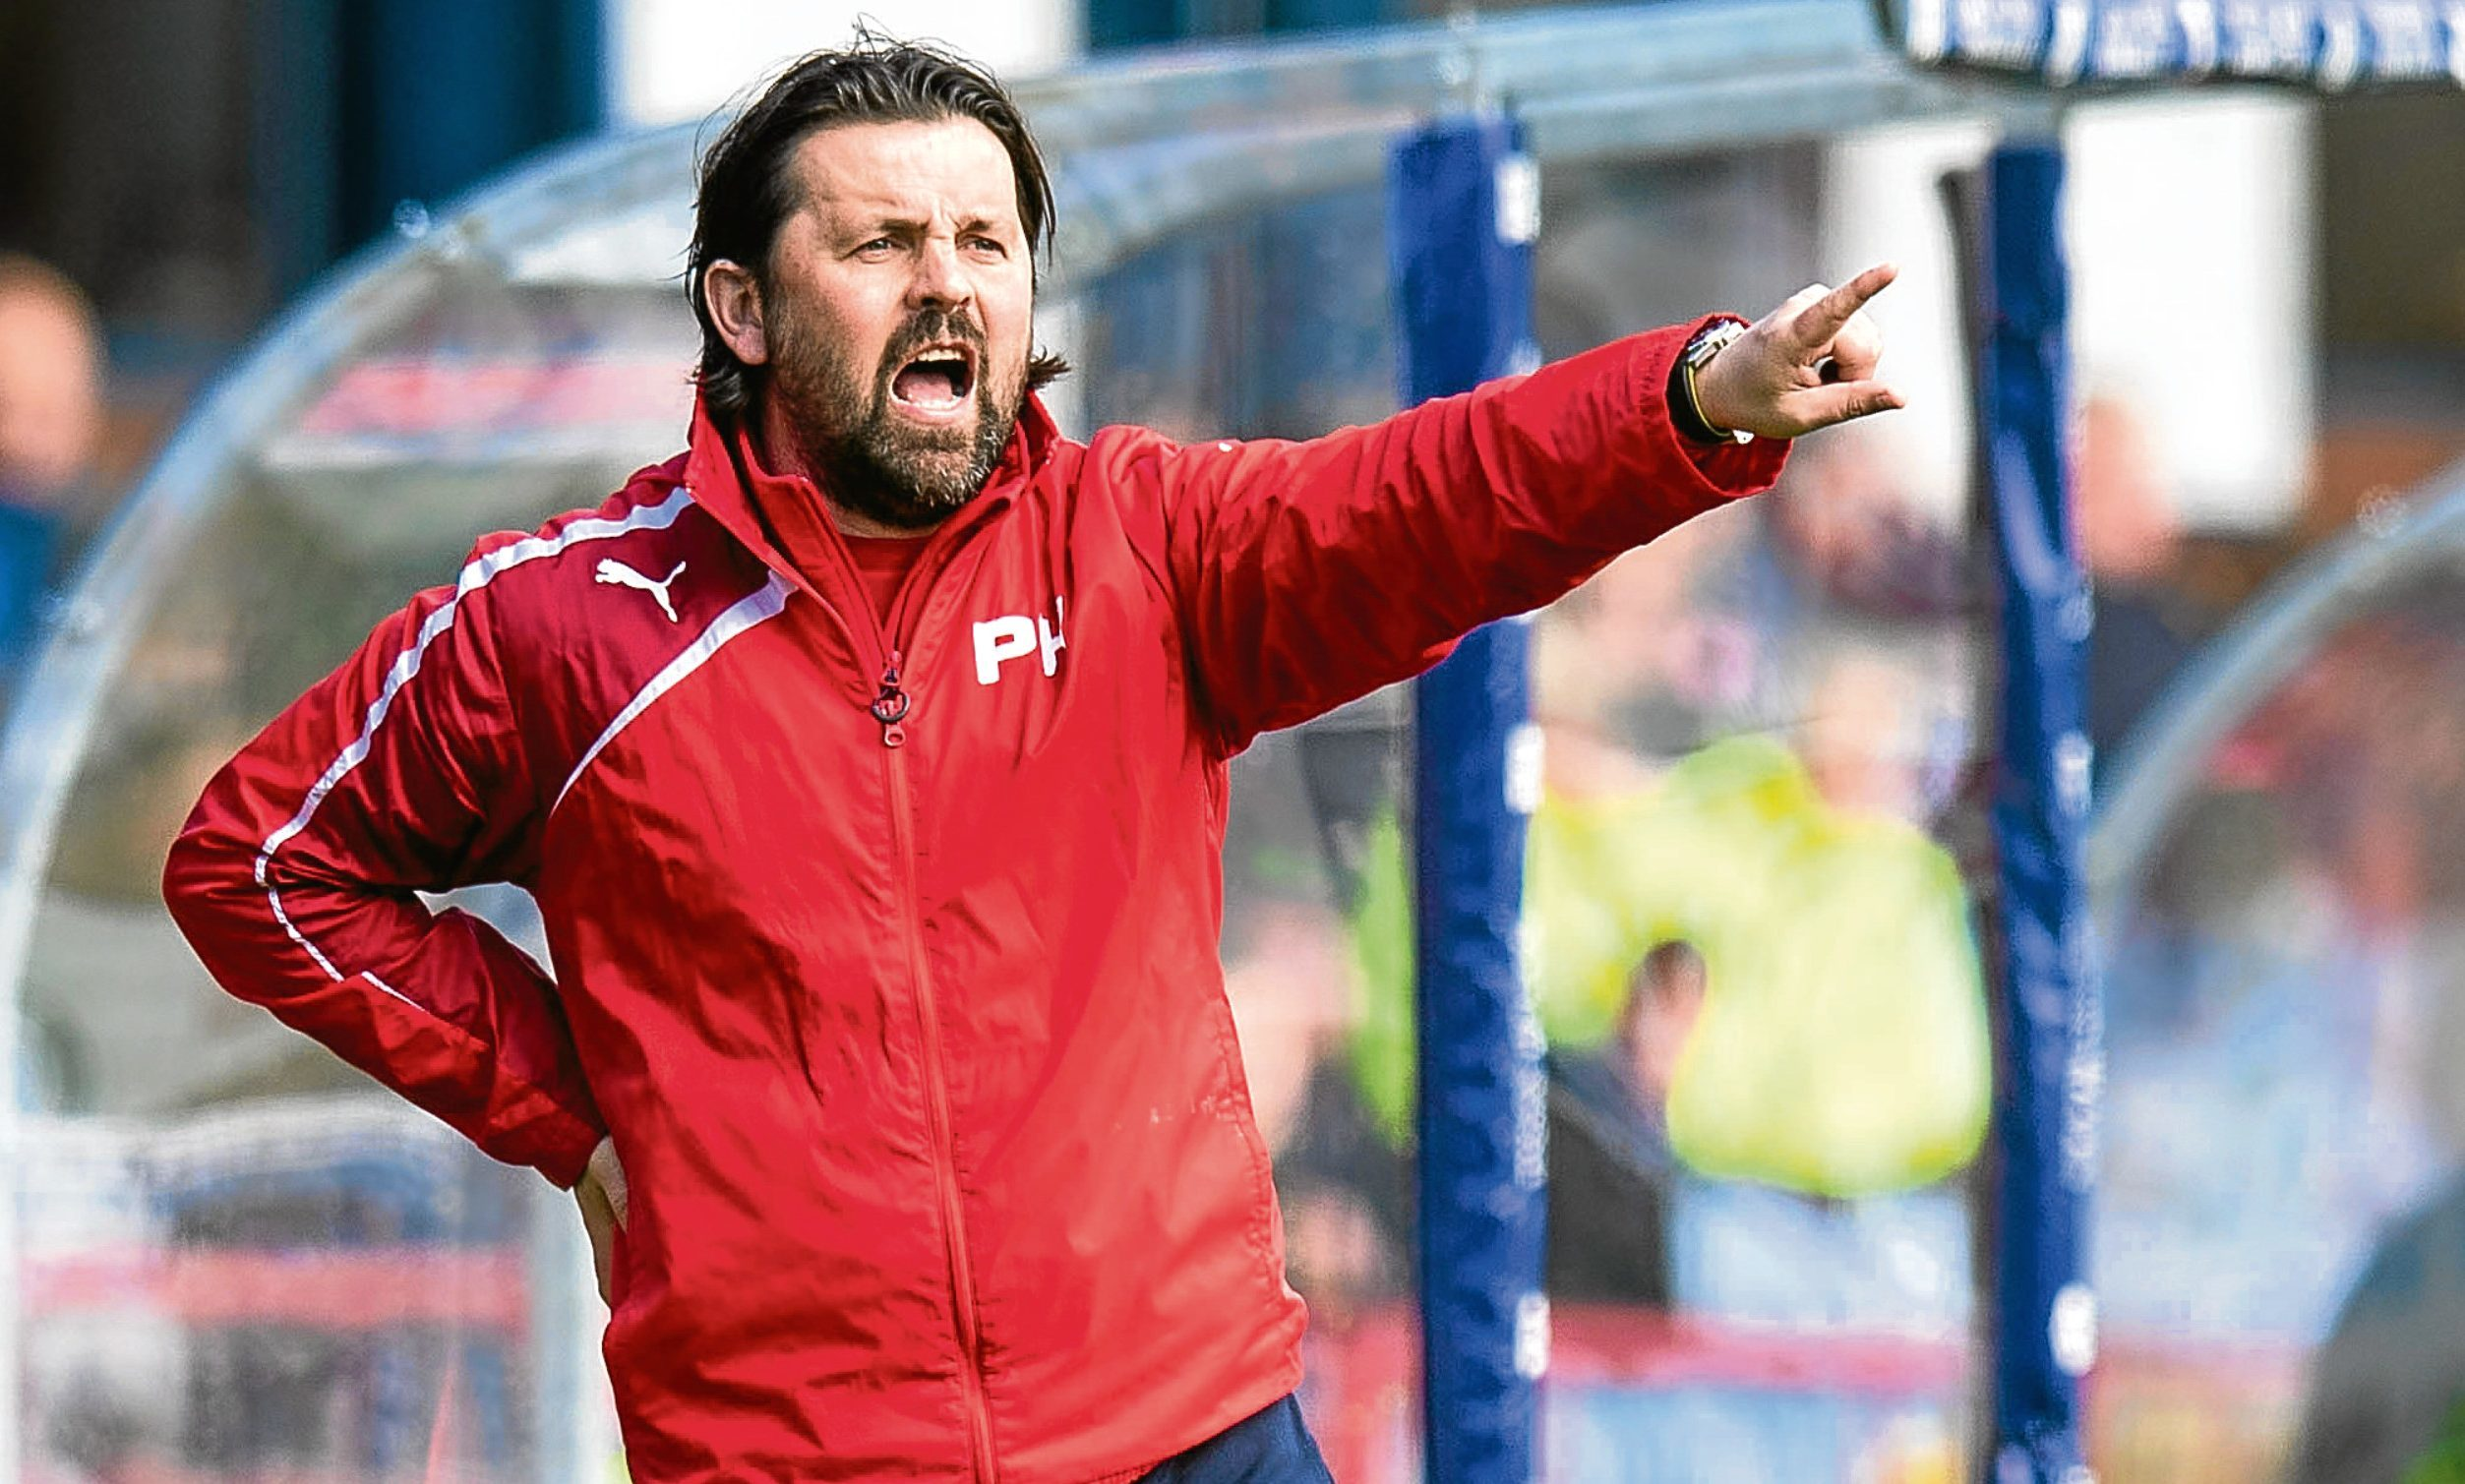 Dundee sacked manager Paul Hartley last month